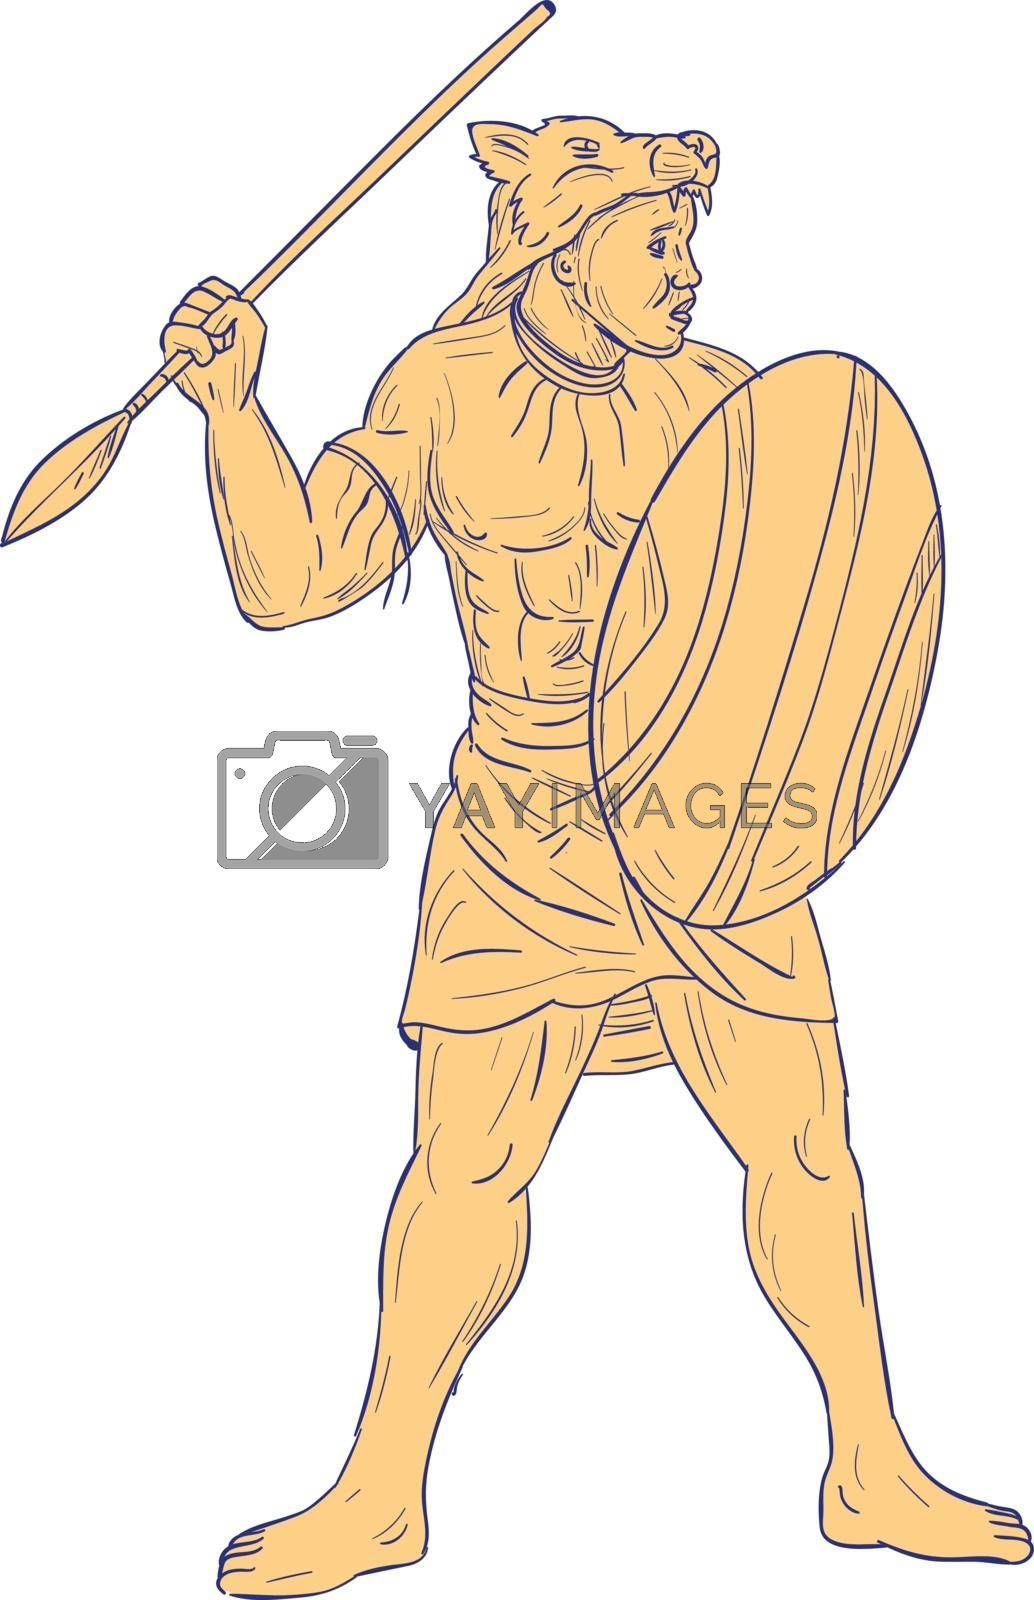 Drawing sketch style illustration of an african warrior with wolf mask on head holding spear and shield looking to the side set on isolated white background.